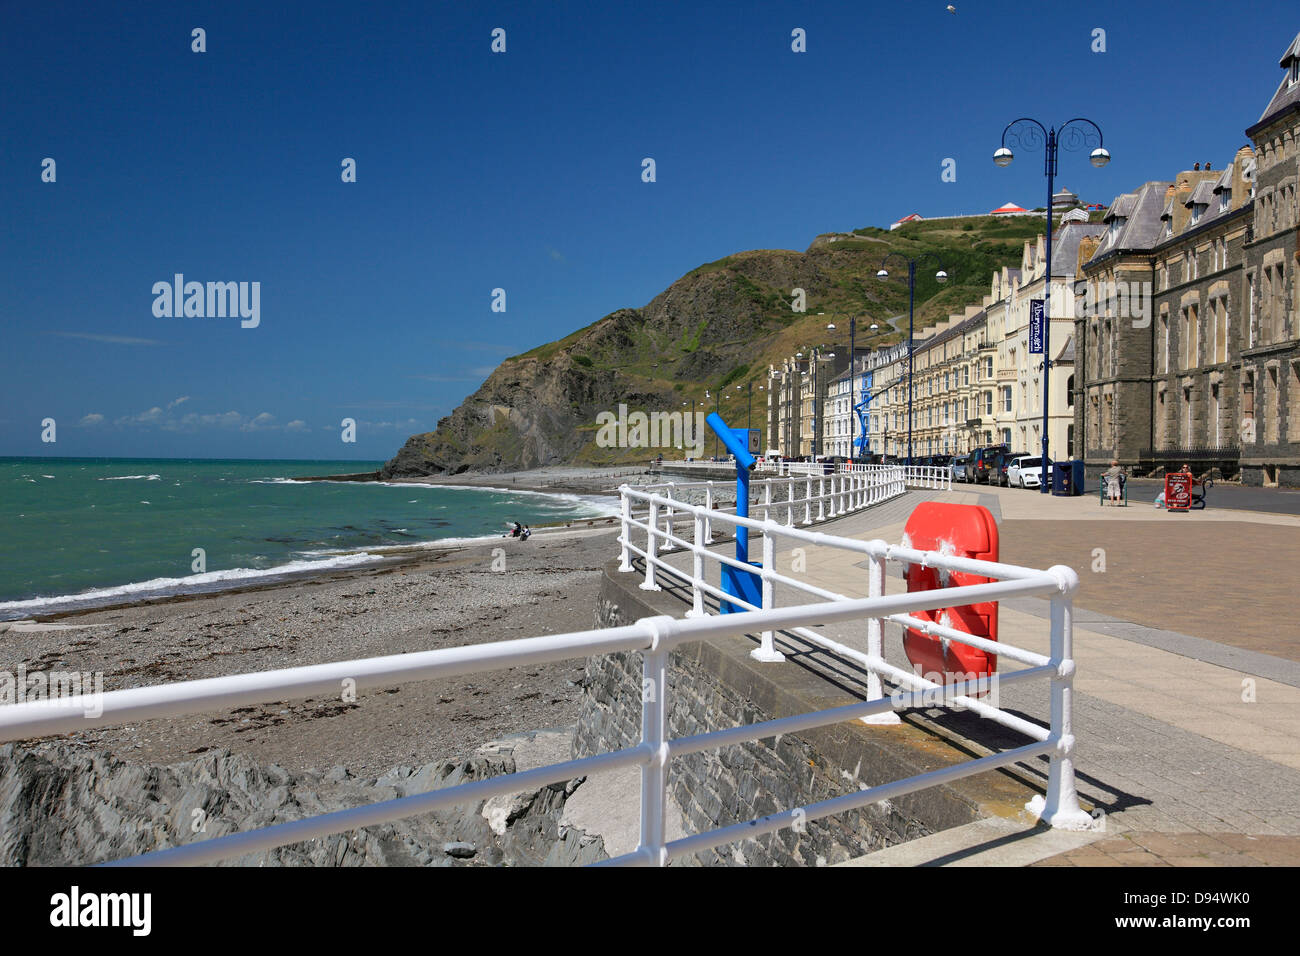 The seafront promenade and Constitution Hill at Aberystwyth on the west coast of Wales - Stock Image